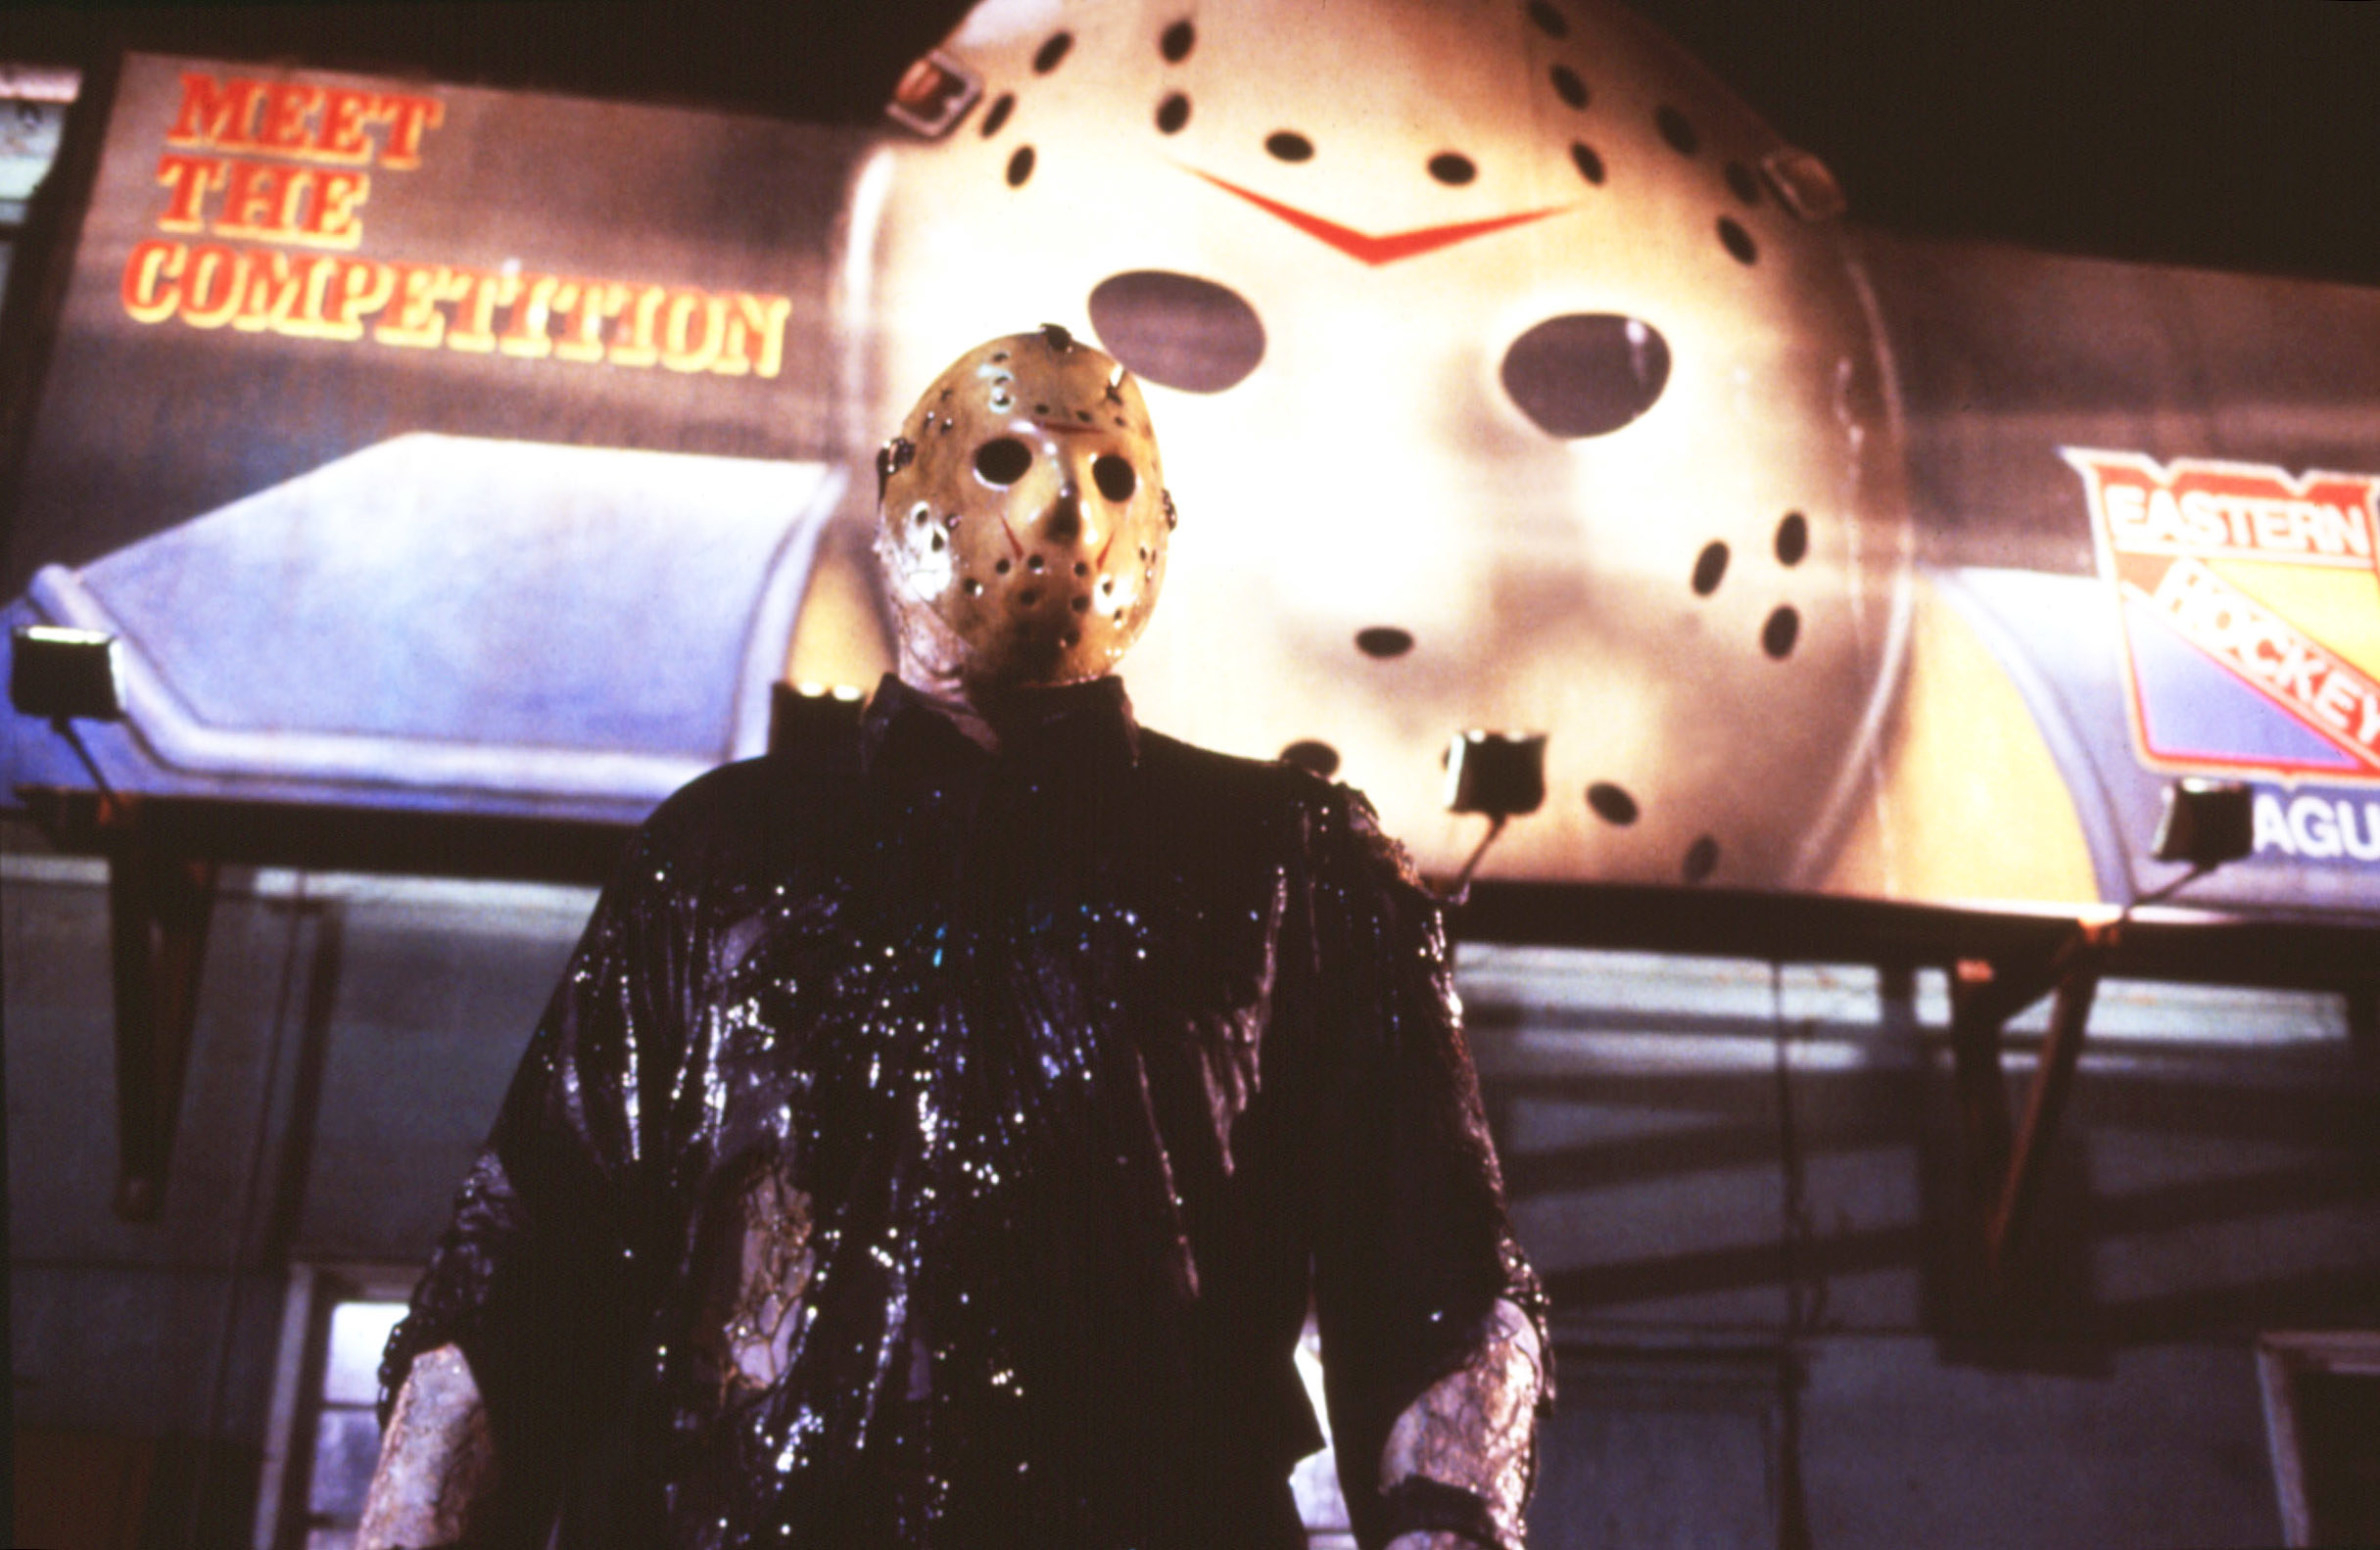 Jason standing in front of a giant billboard with a hockey goalie mask like his on it